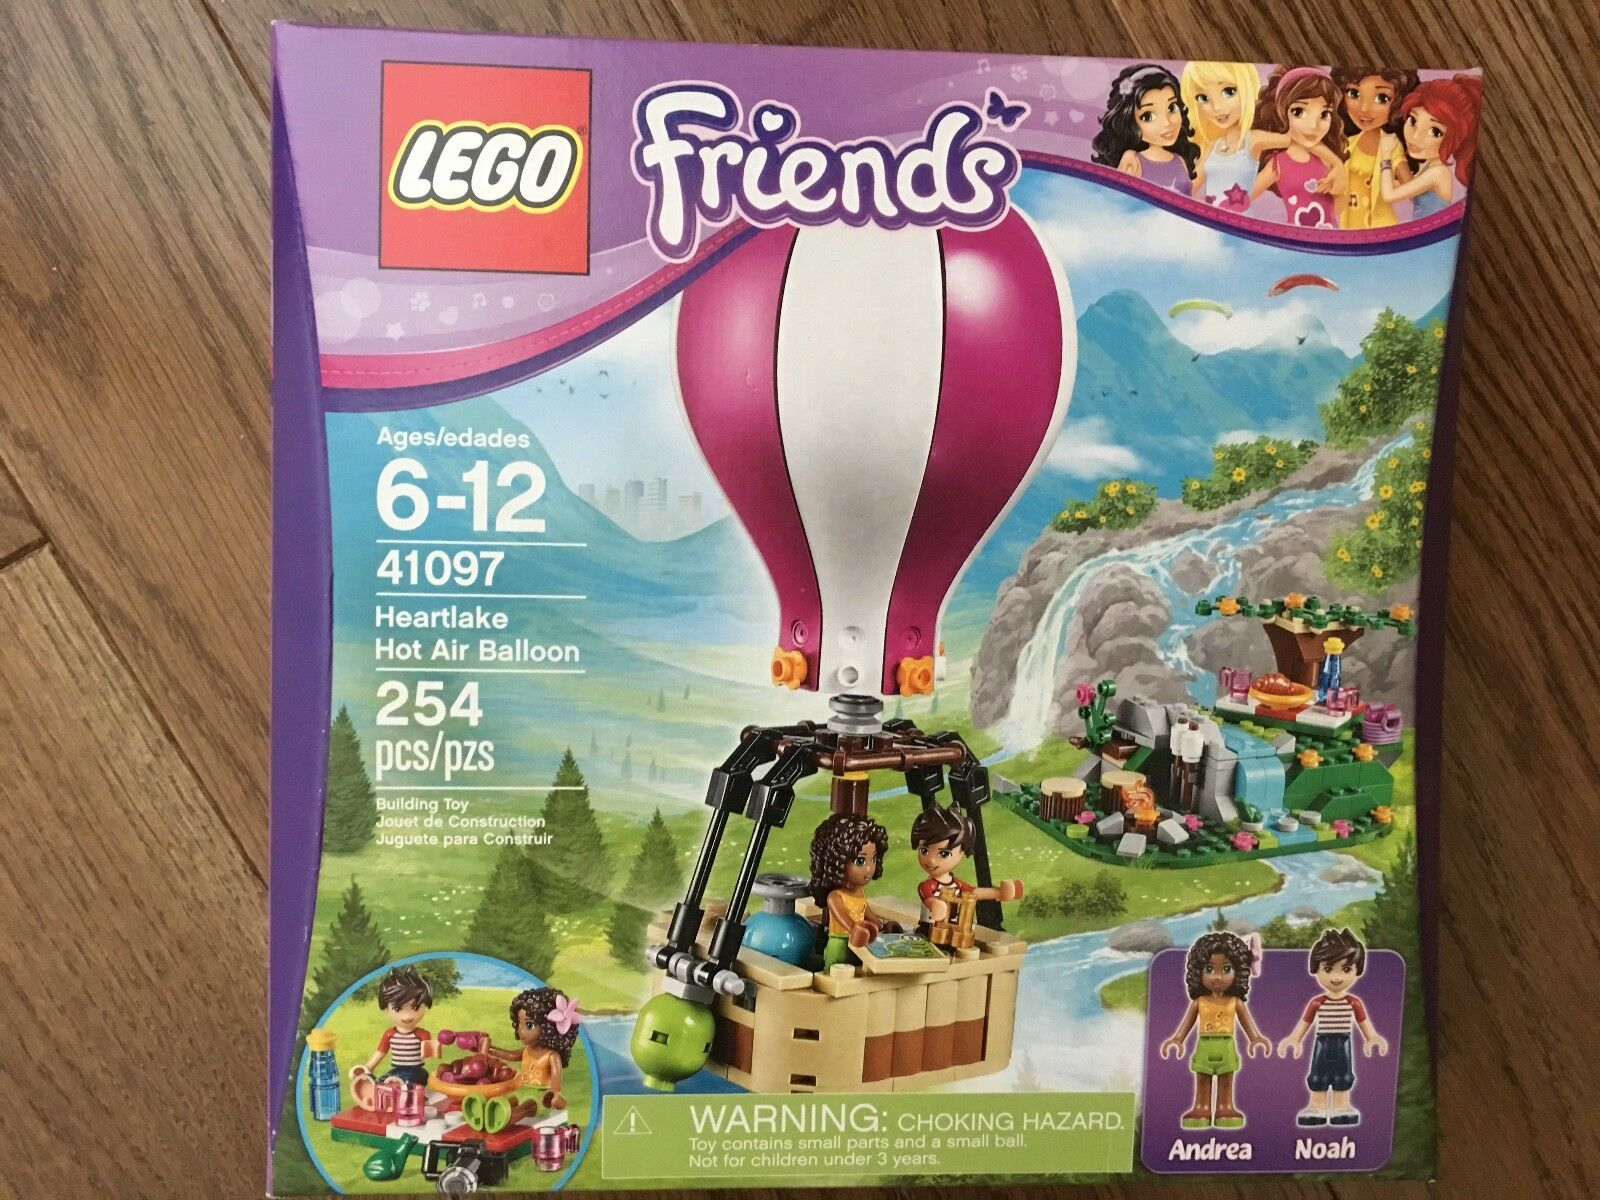 NEW Sealed Lego Friends Friends Friends Heartlake Hot Air Balloon Retired 41097 Age 6 - 12 c17abd